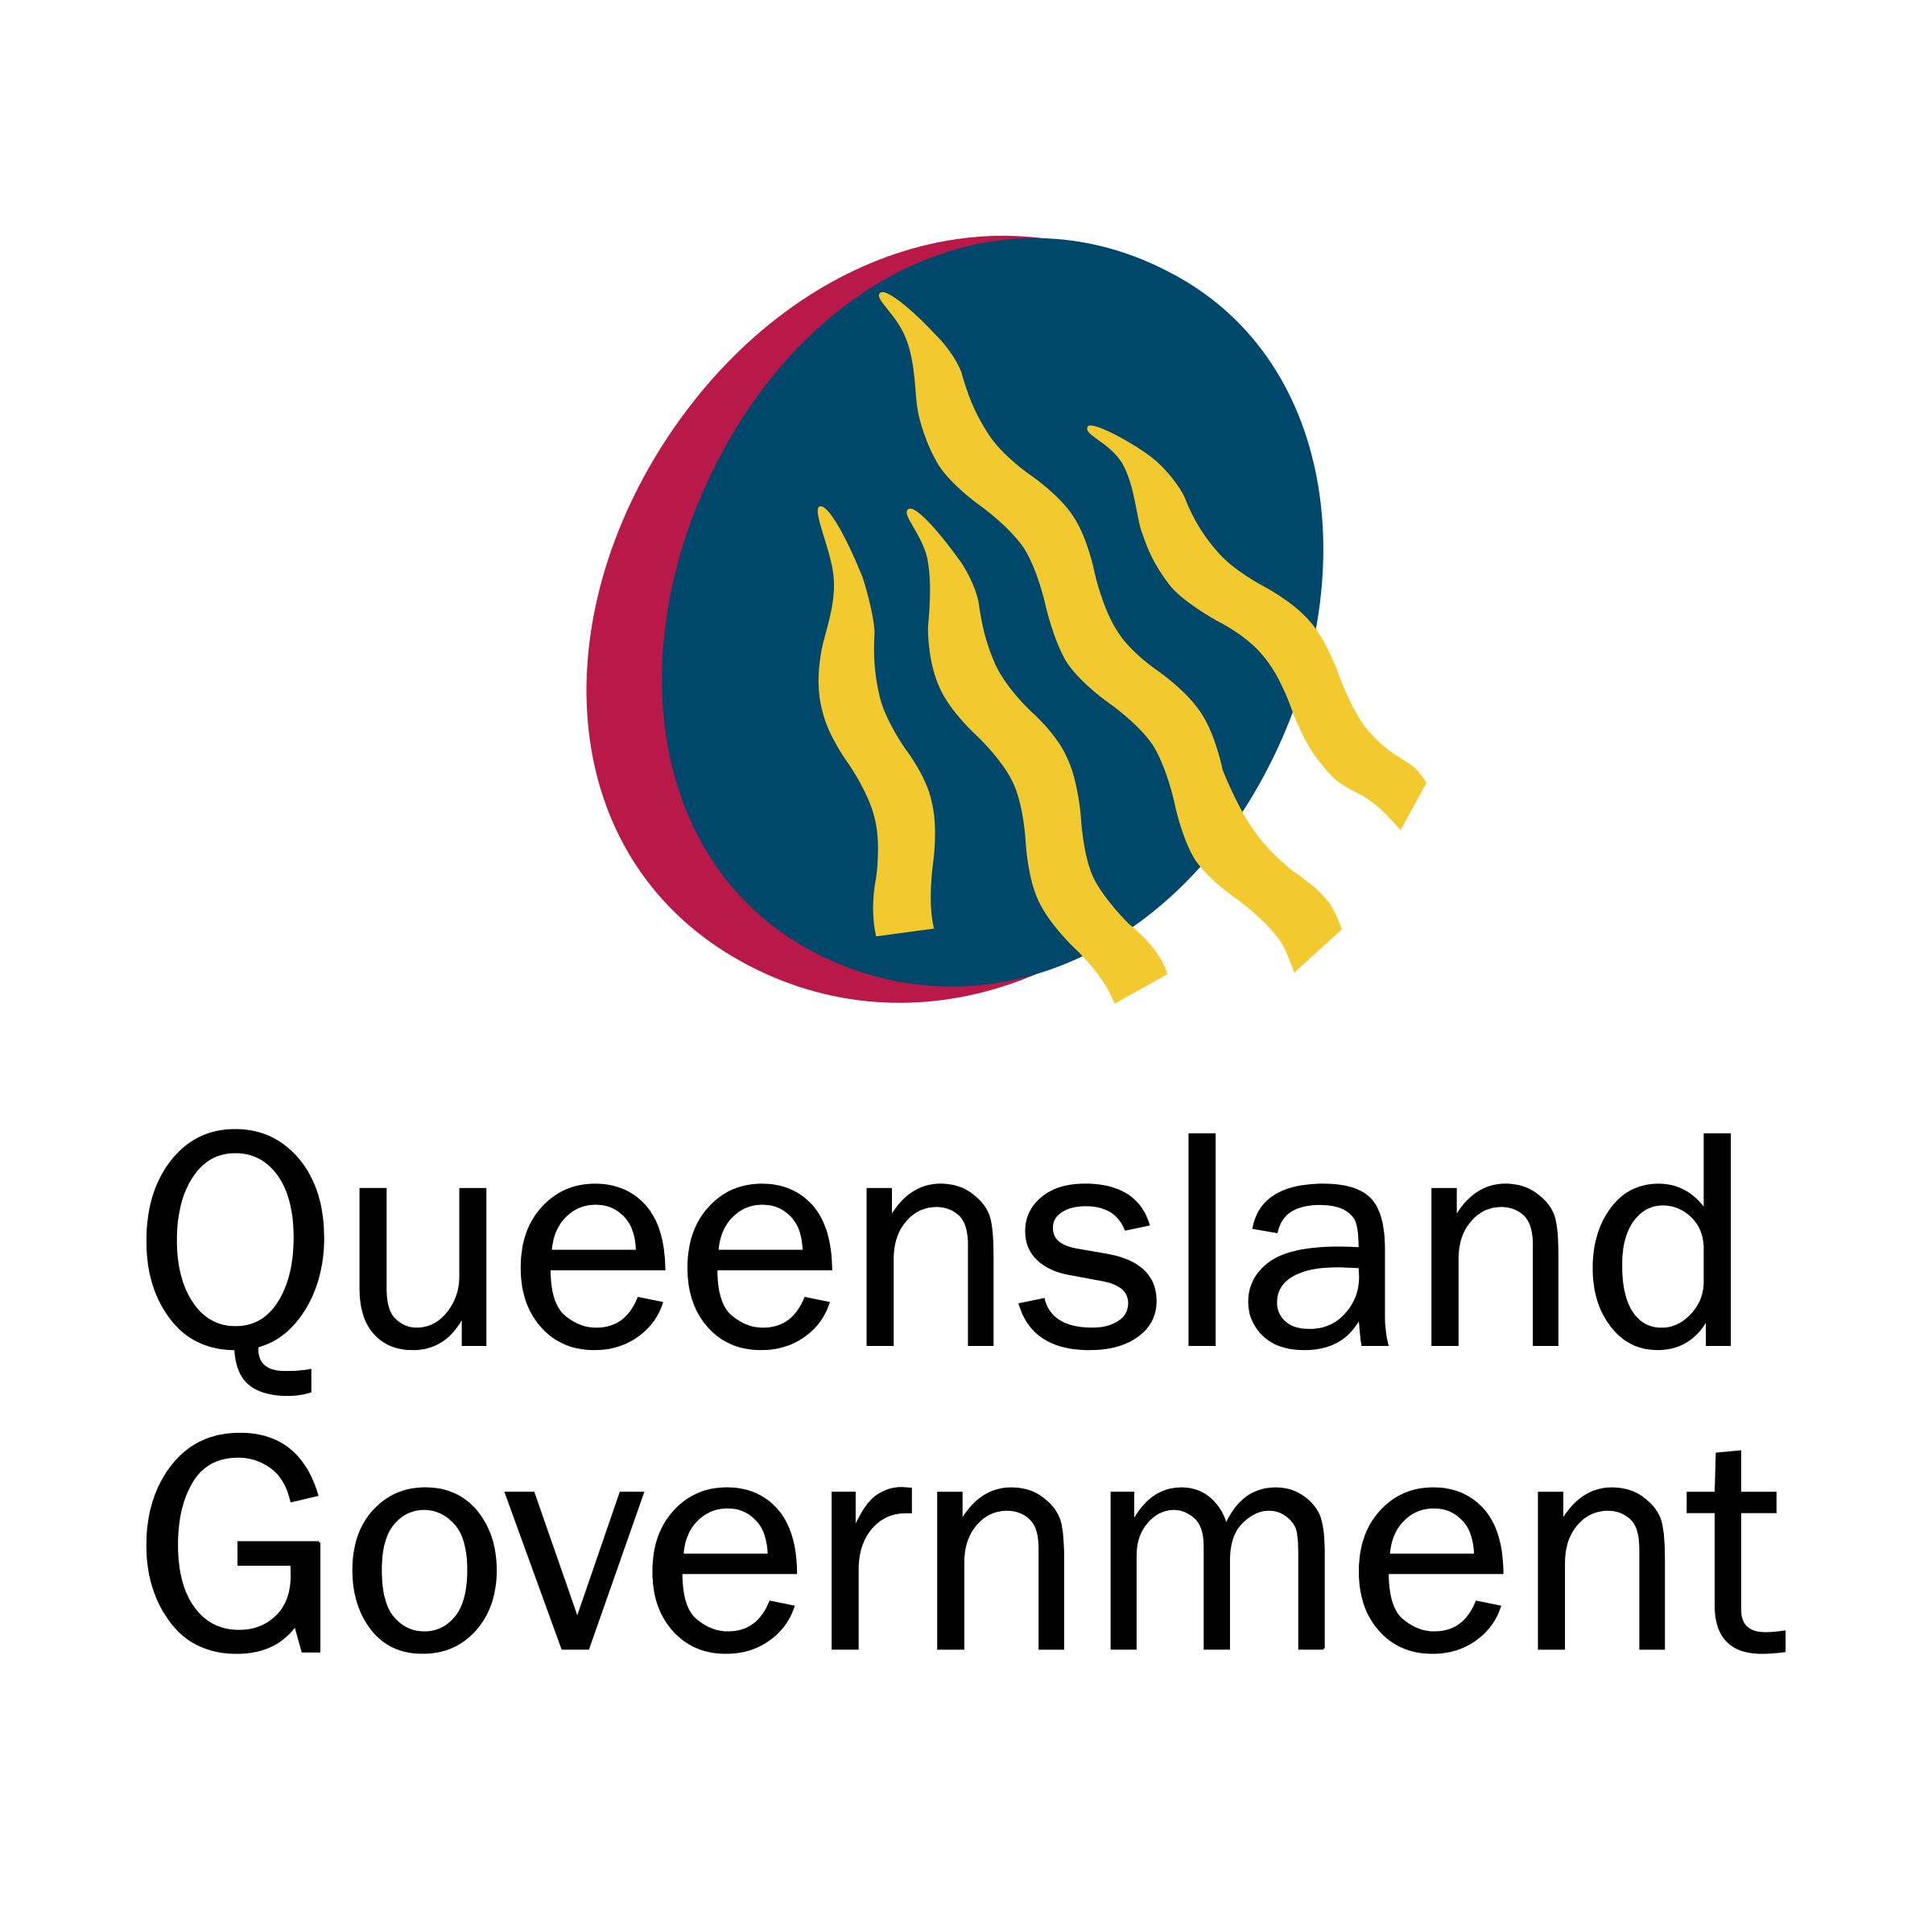 queensland-government-logo-png-transparent